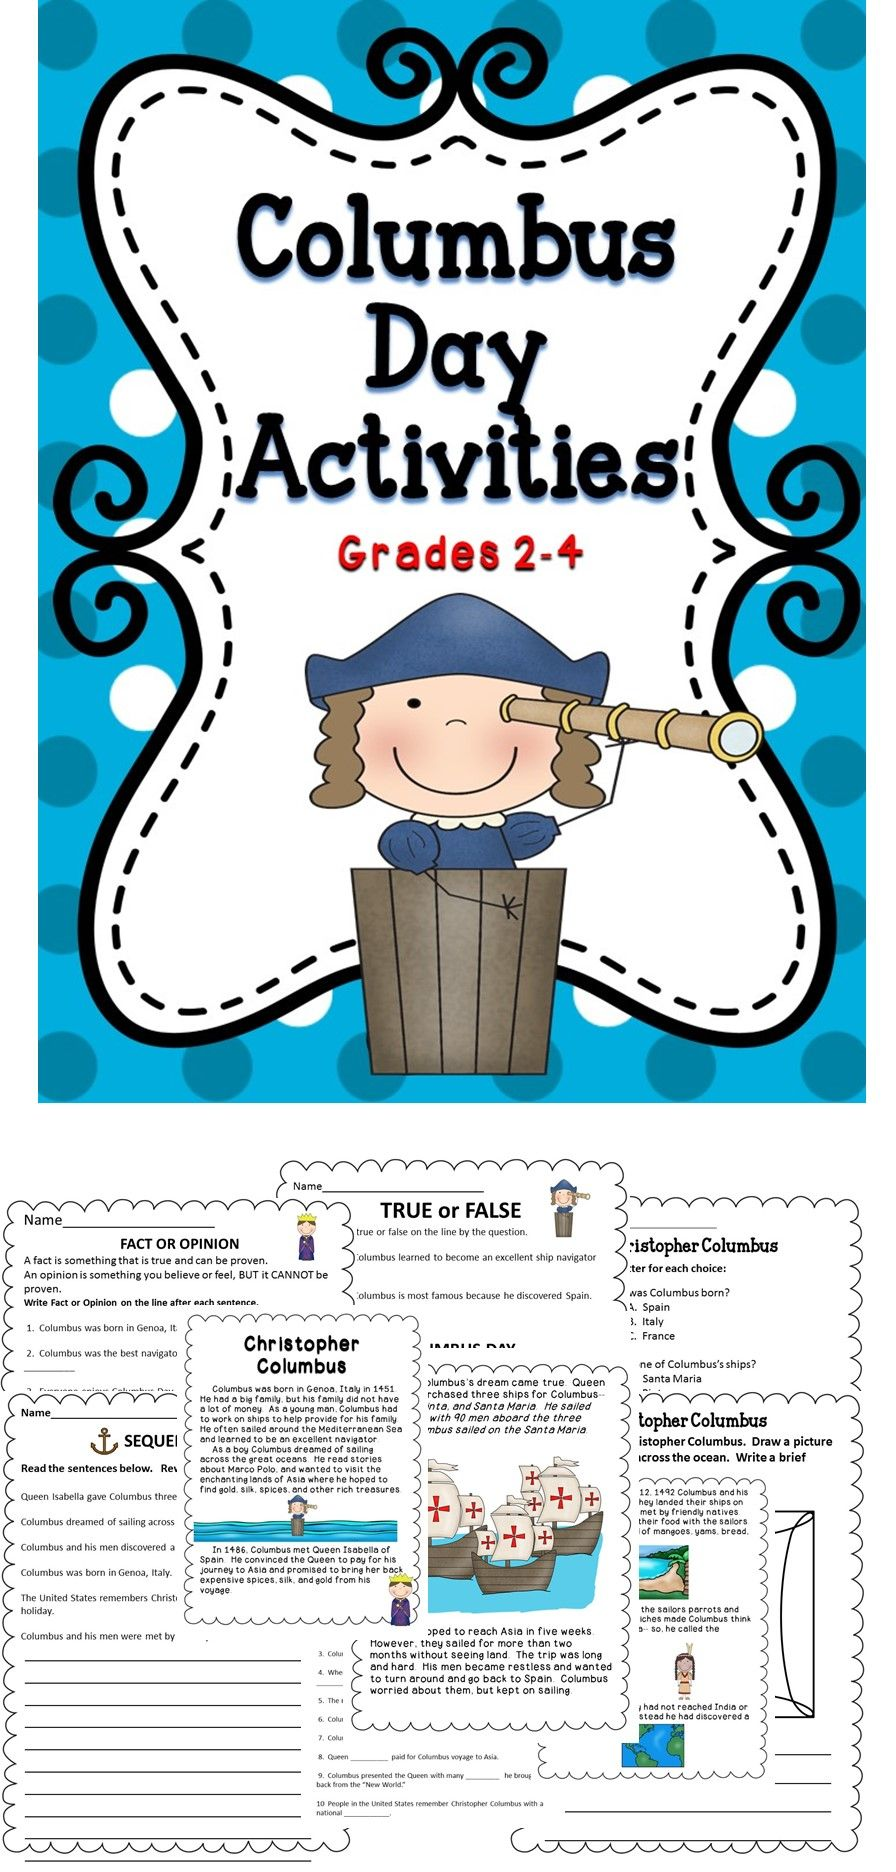 Columbus Day Activities Includes Reading Comprehension Activities Assessments And Wr 3rd Grade Social Studies Homeschool Elementary Teaching Social Studies Columbus day reading comprehension